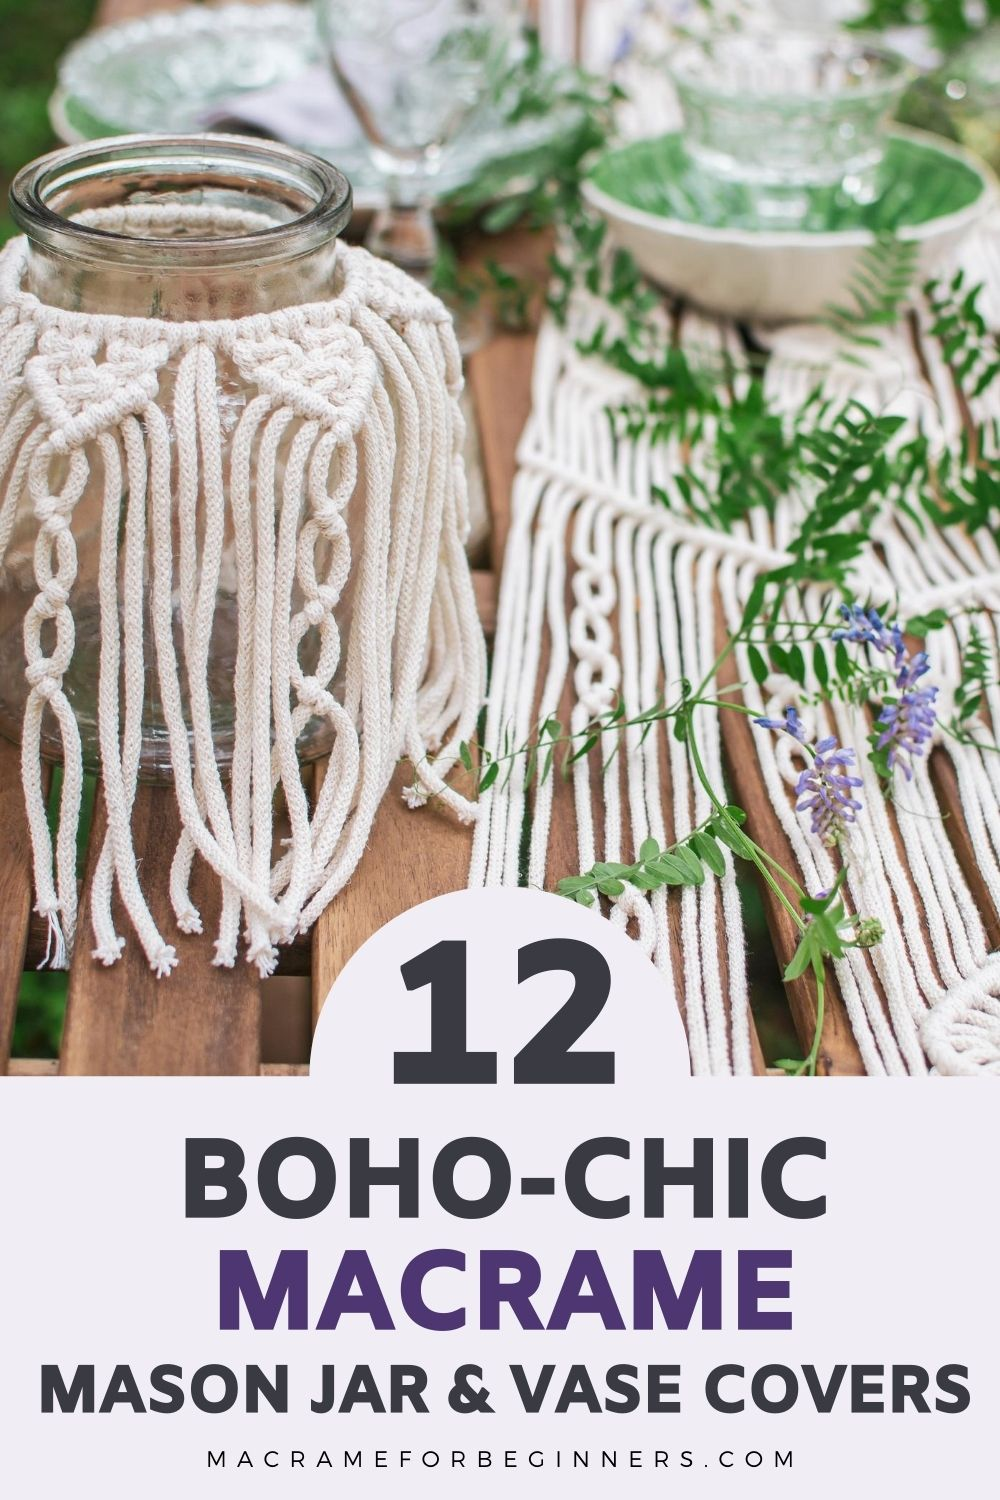 12 Boho-chic Macrame Vase & Mason Jar Cover Patterns Macrame for Beginners Pin 1